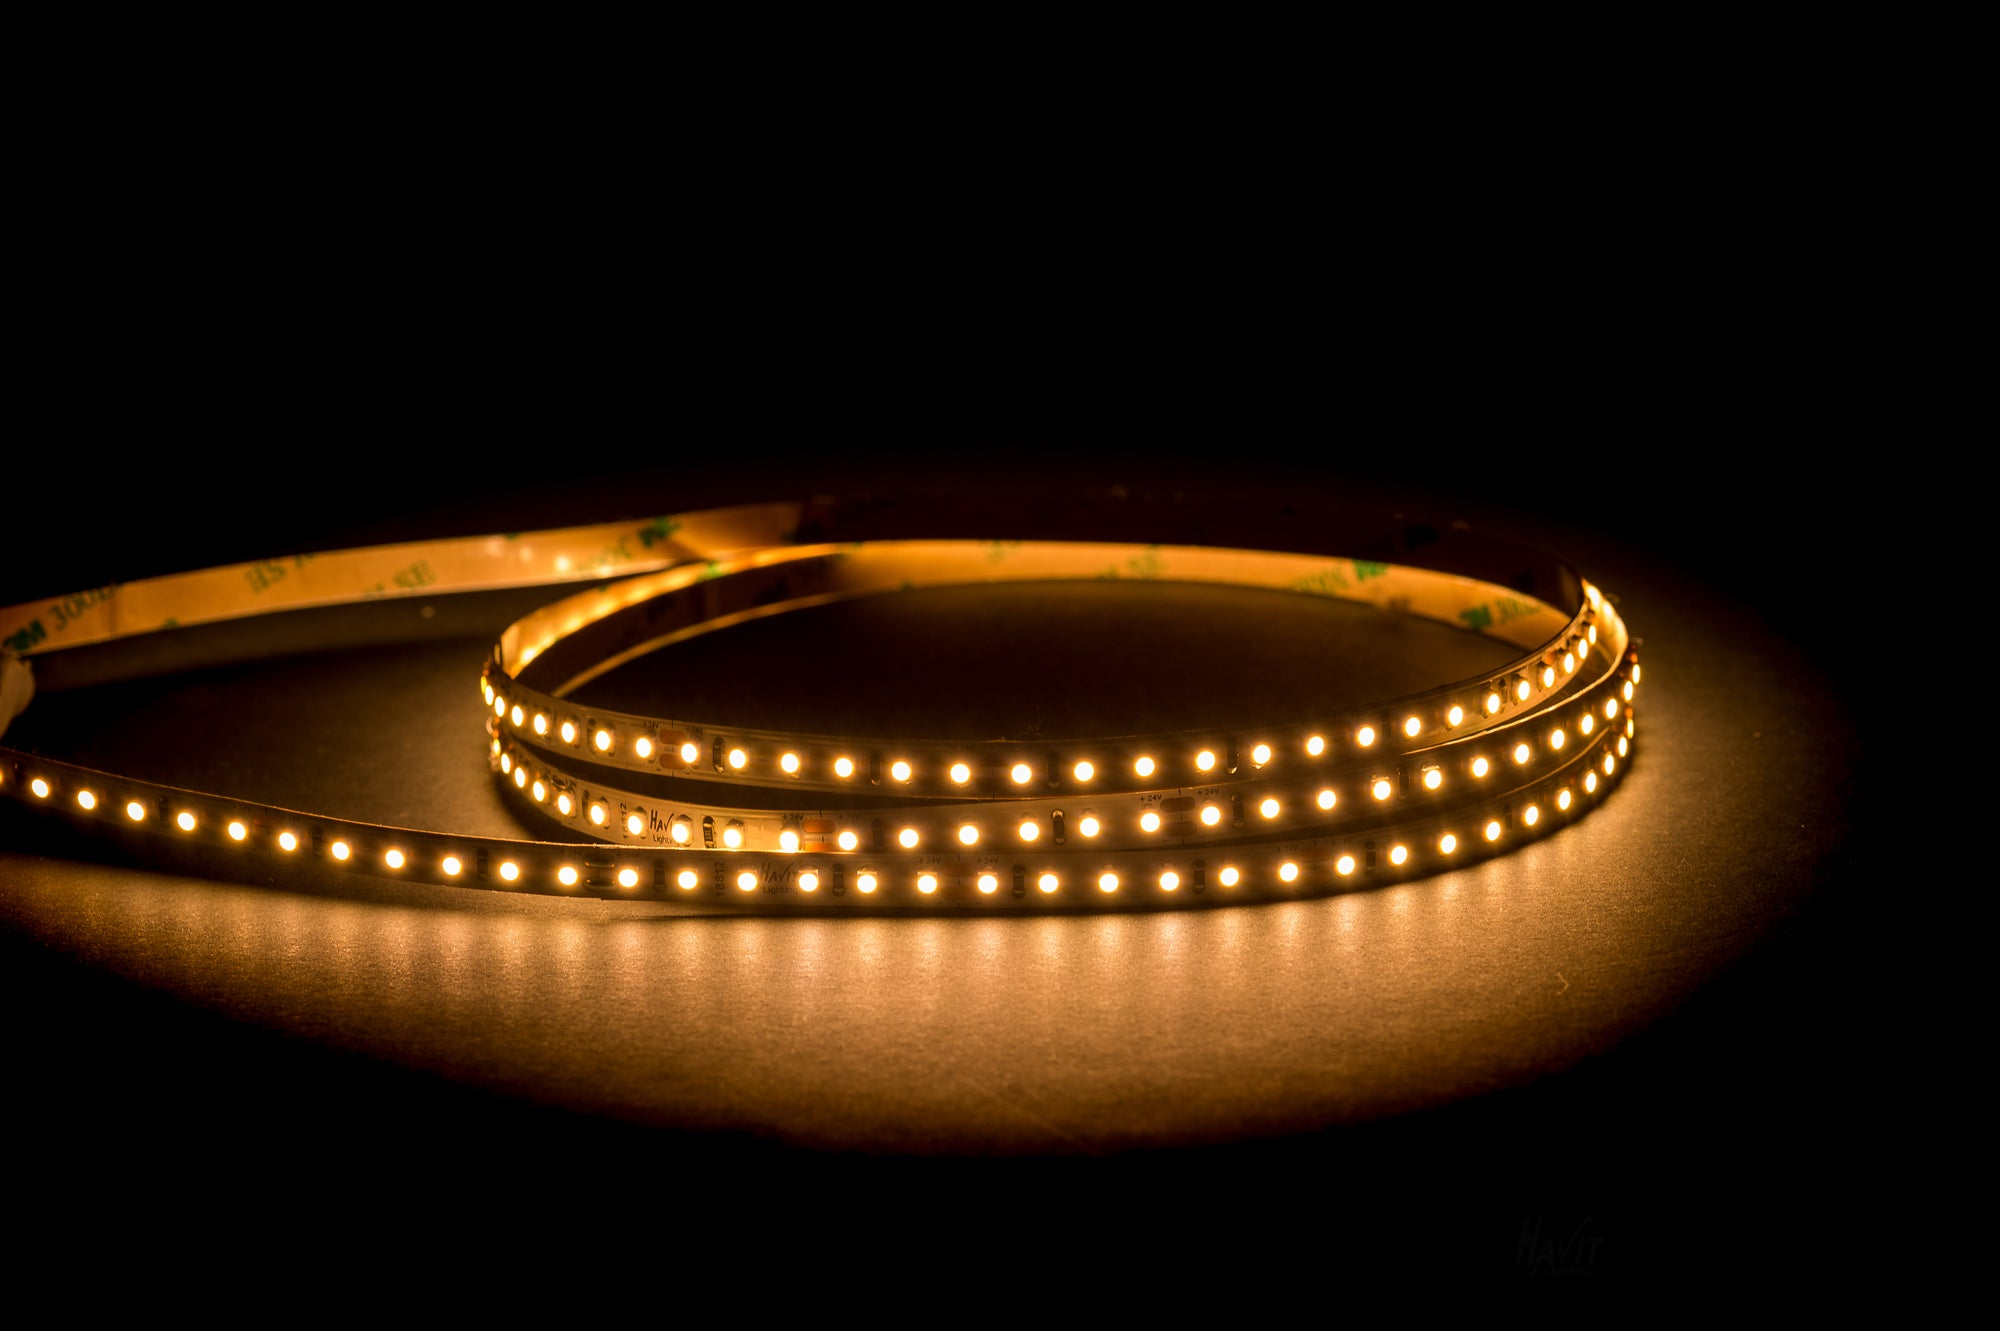 HV9722-IP20-128-3K - 9.6w 24v DC IP20 LED Strip 3000k